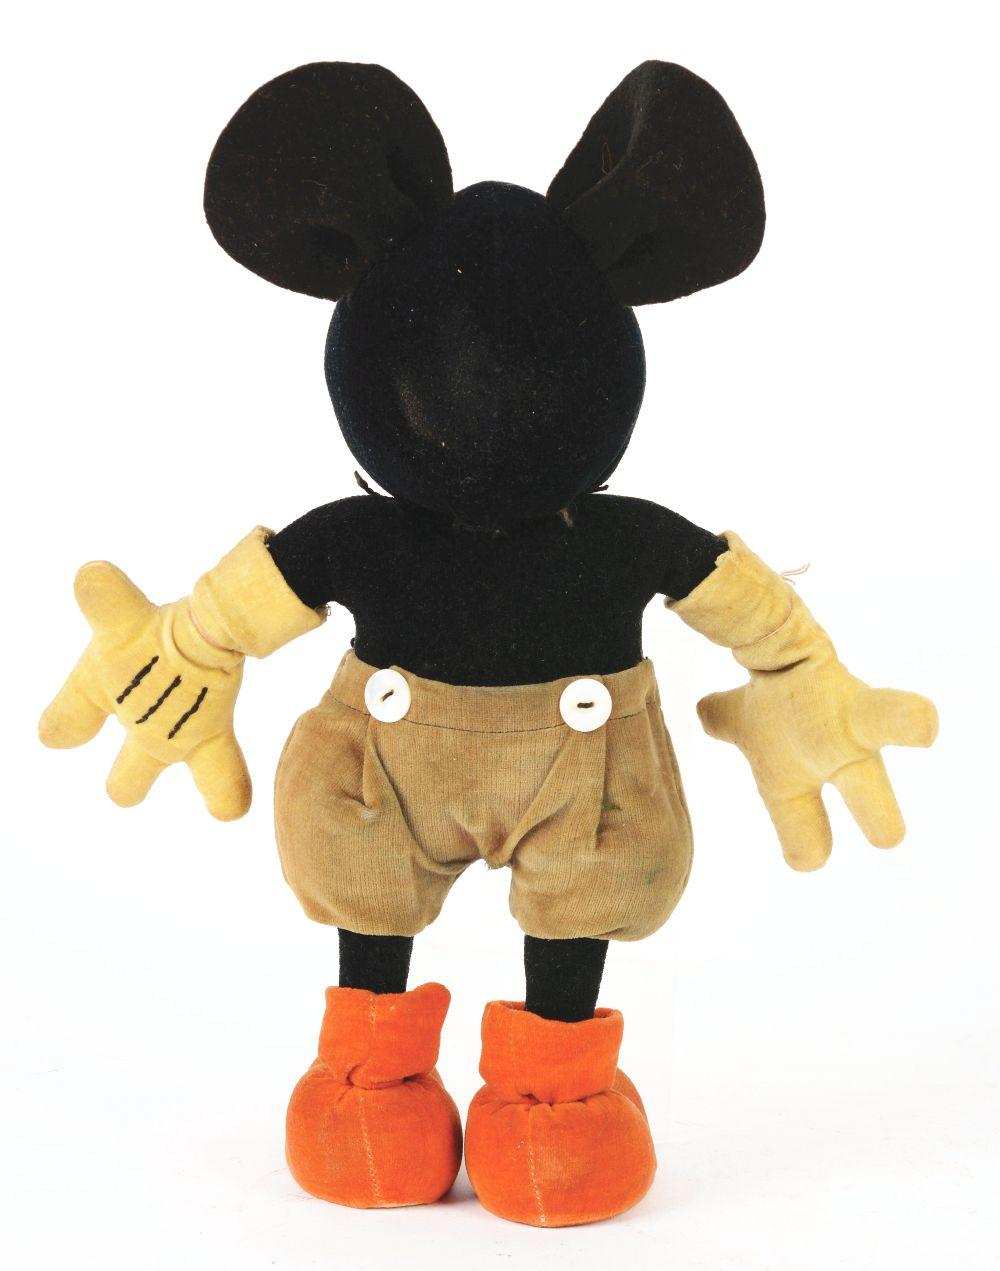 Lot 2334: Walt Disney Pre-War Steiff Mickey Mouse Doll.